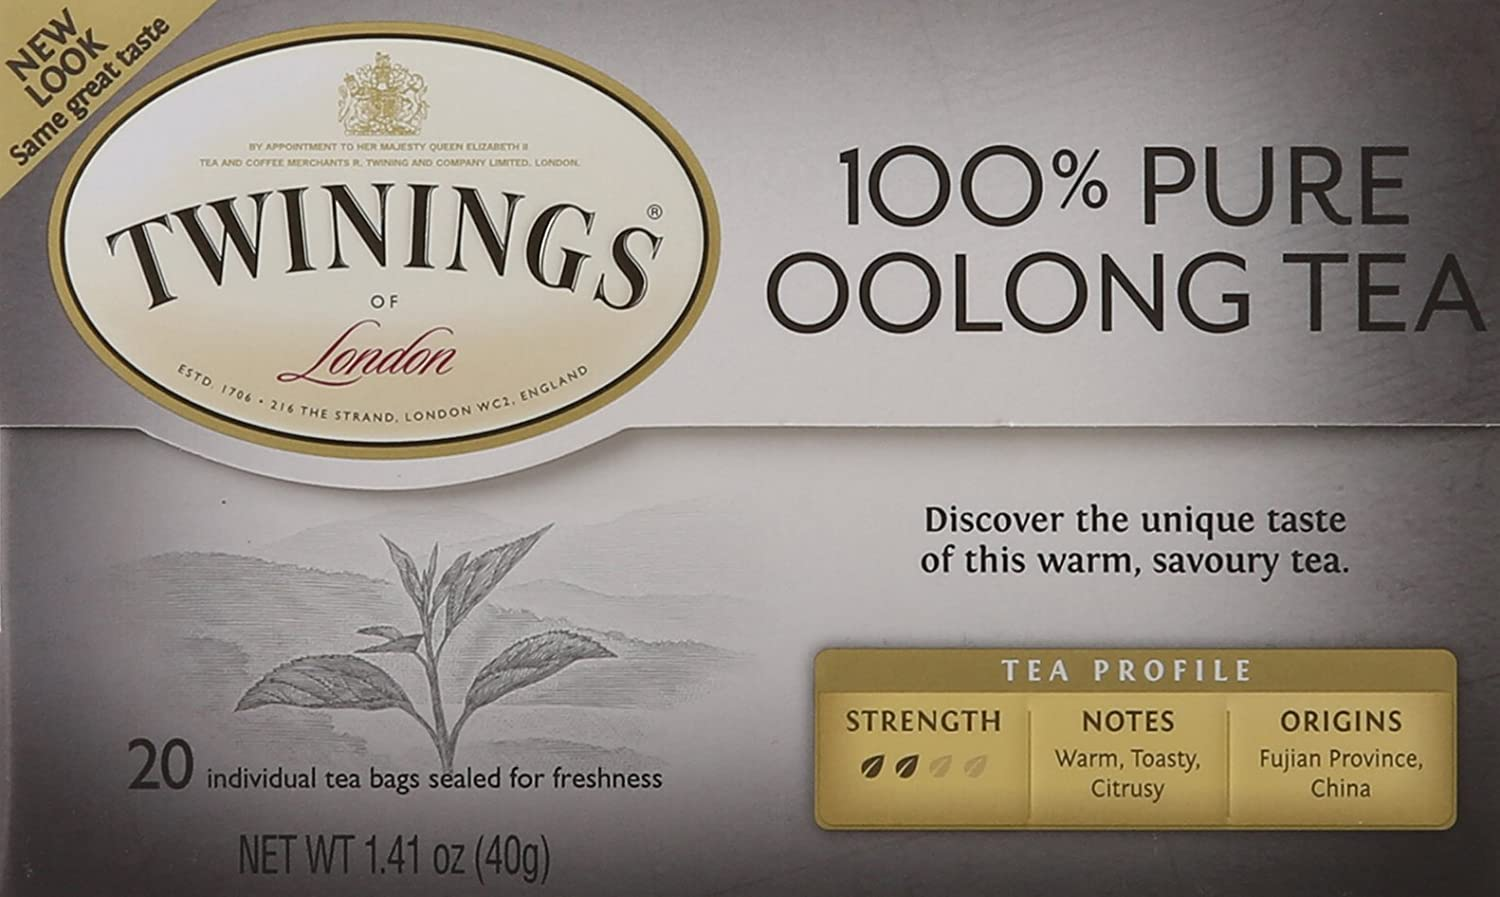 Twinings of London China Oolong Tea Bags, 20 Count